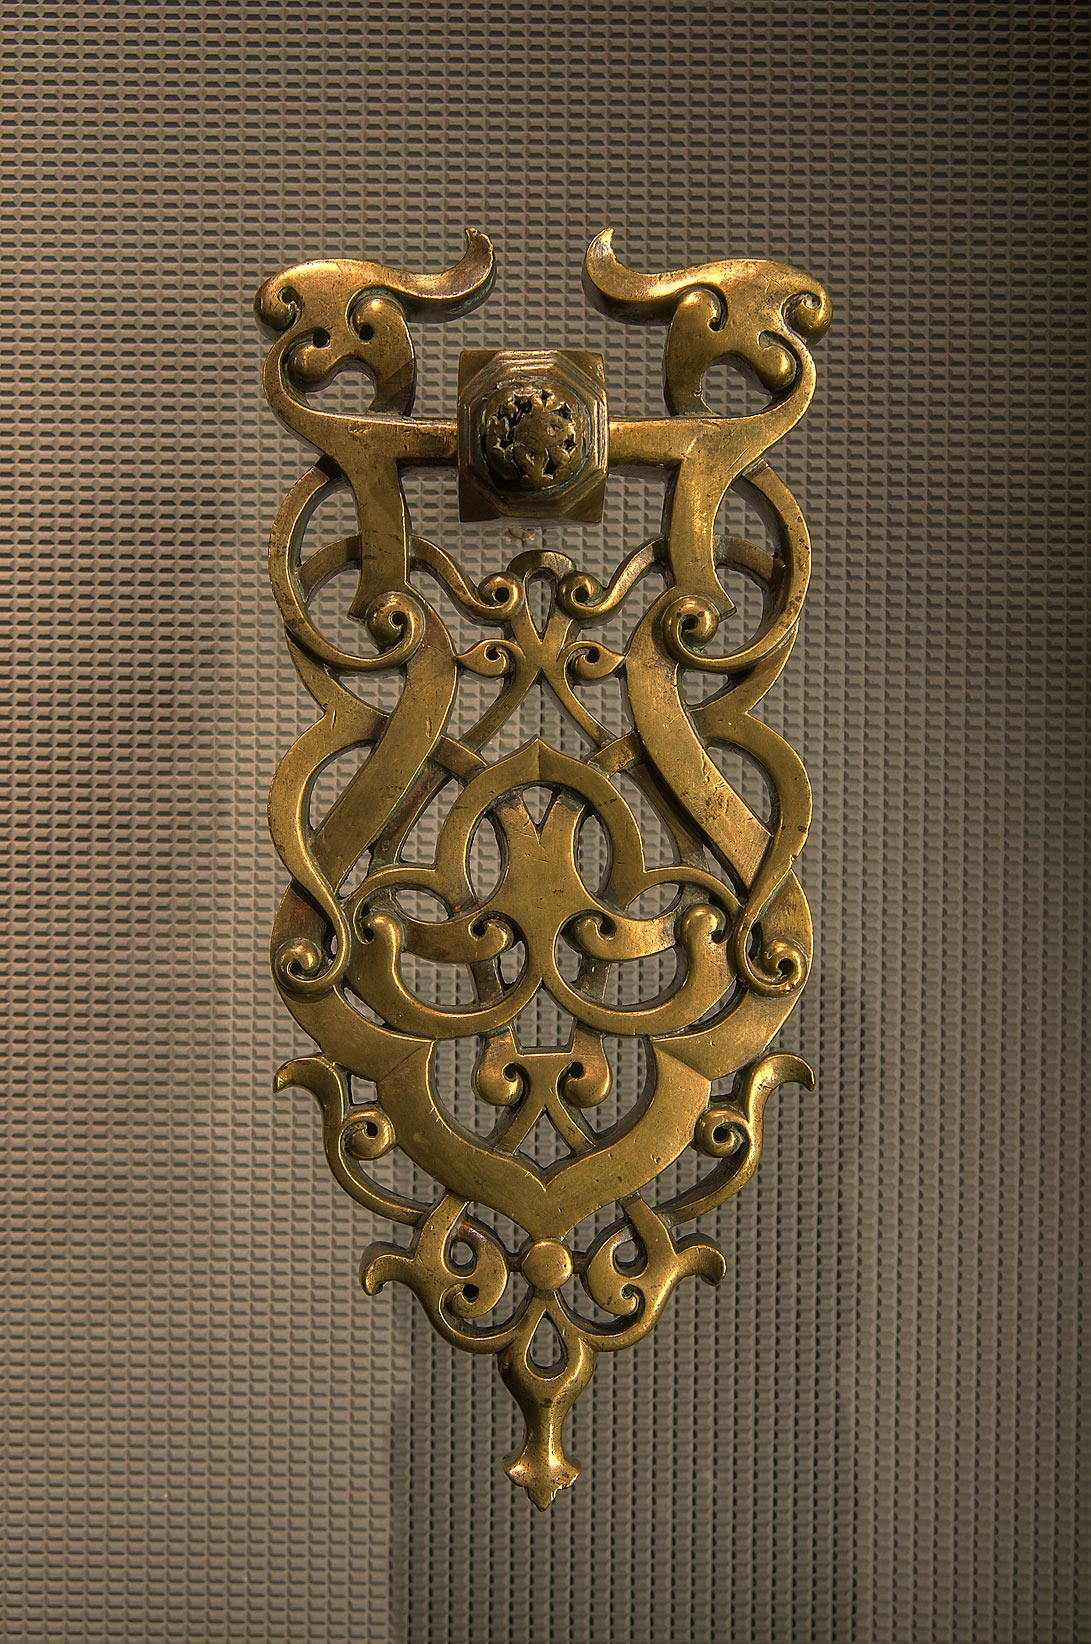 Door knocker (13th century, brass) in Museum of Islamic Art. Doha, Qatar